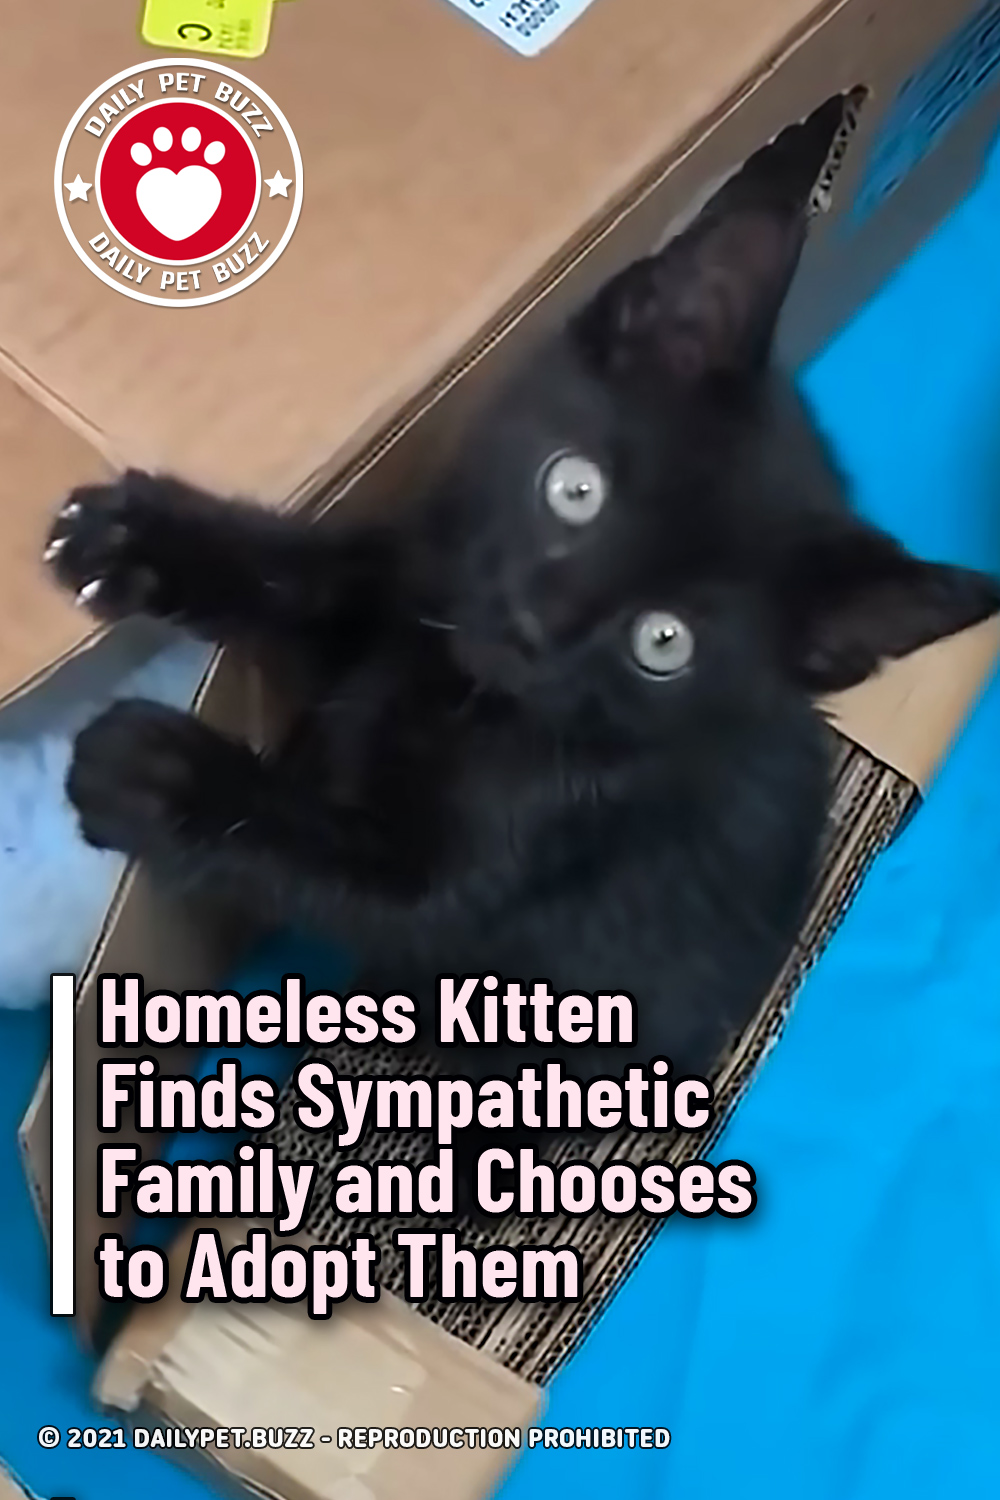 Homeless Kitten Finds Sympathetic Family and Chooses to Adopt Them